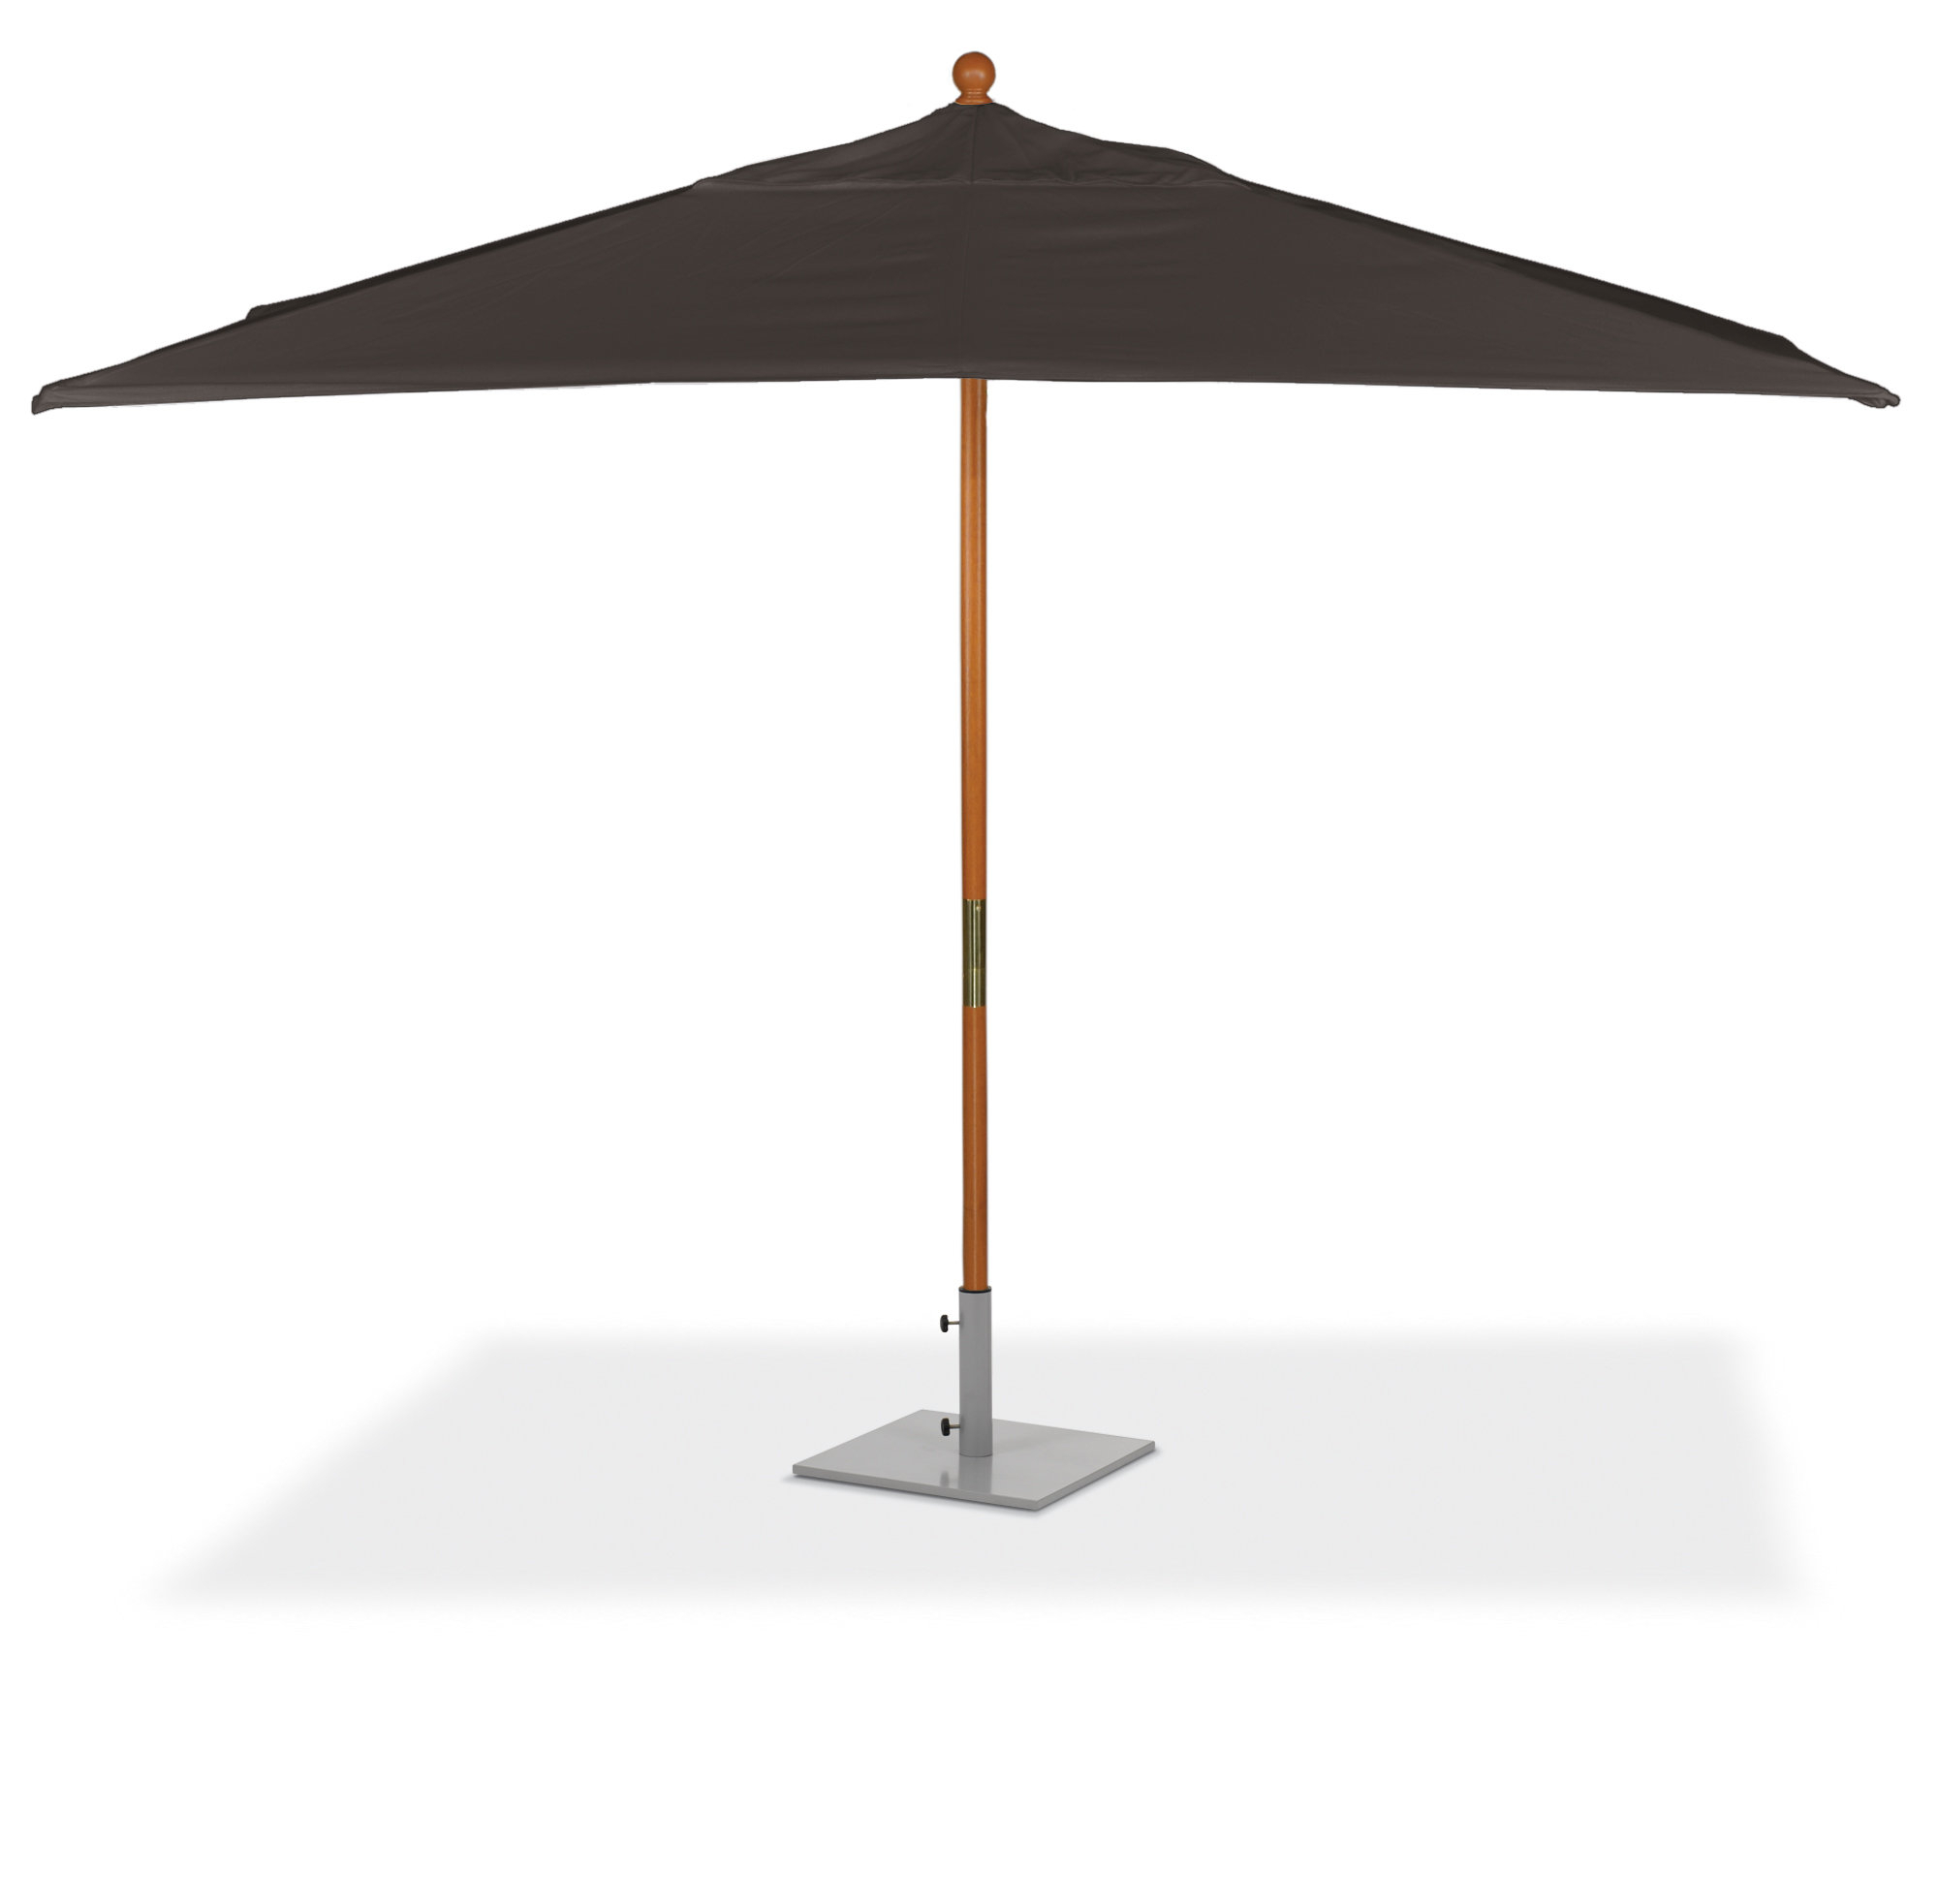 Bradford Rectangular Market Umbrellas For Well Known Standwood 6' X 10' Rectangular Market Sunbrella Umbrella (View 5 of 20)